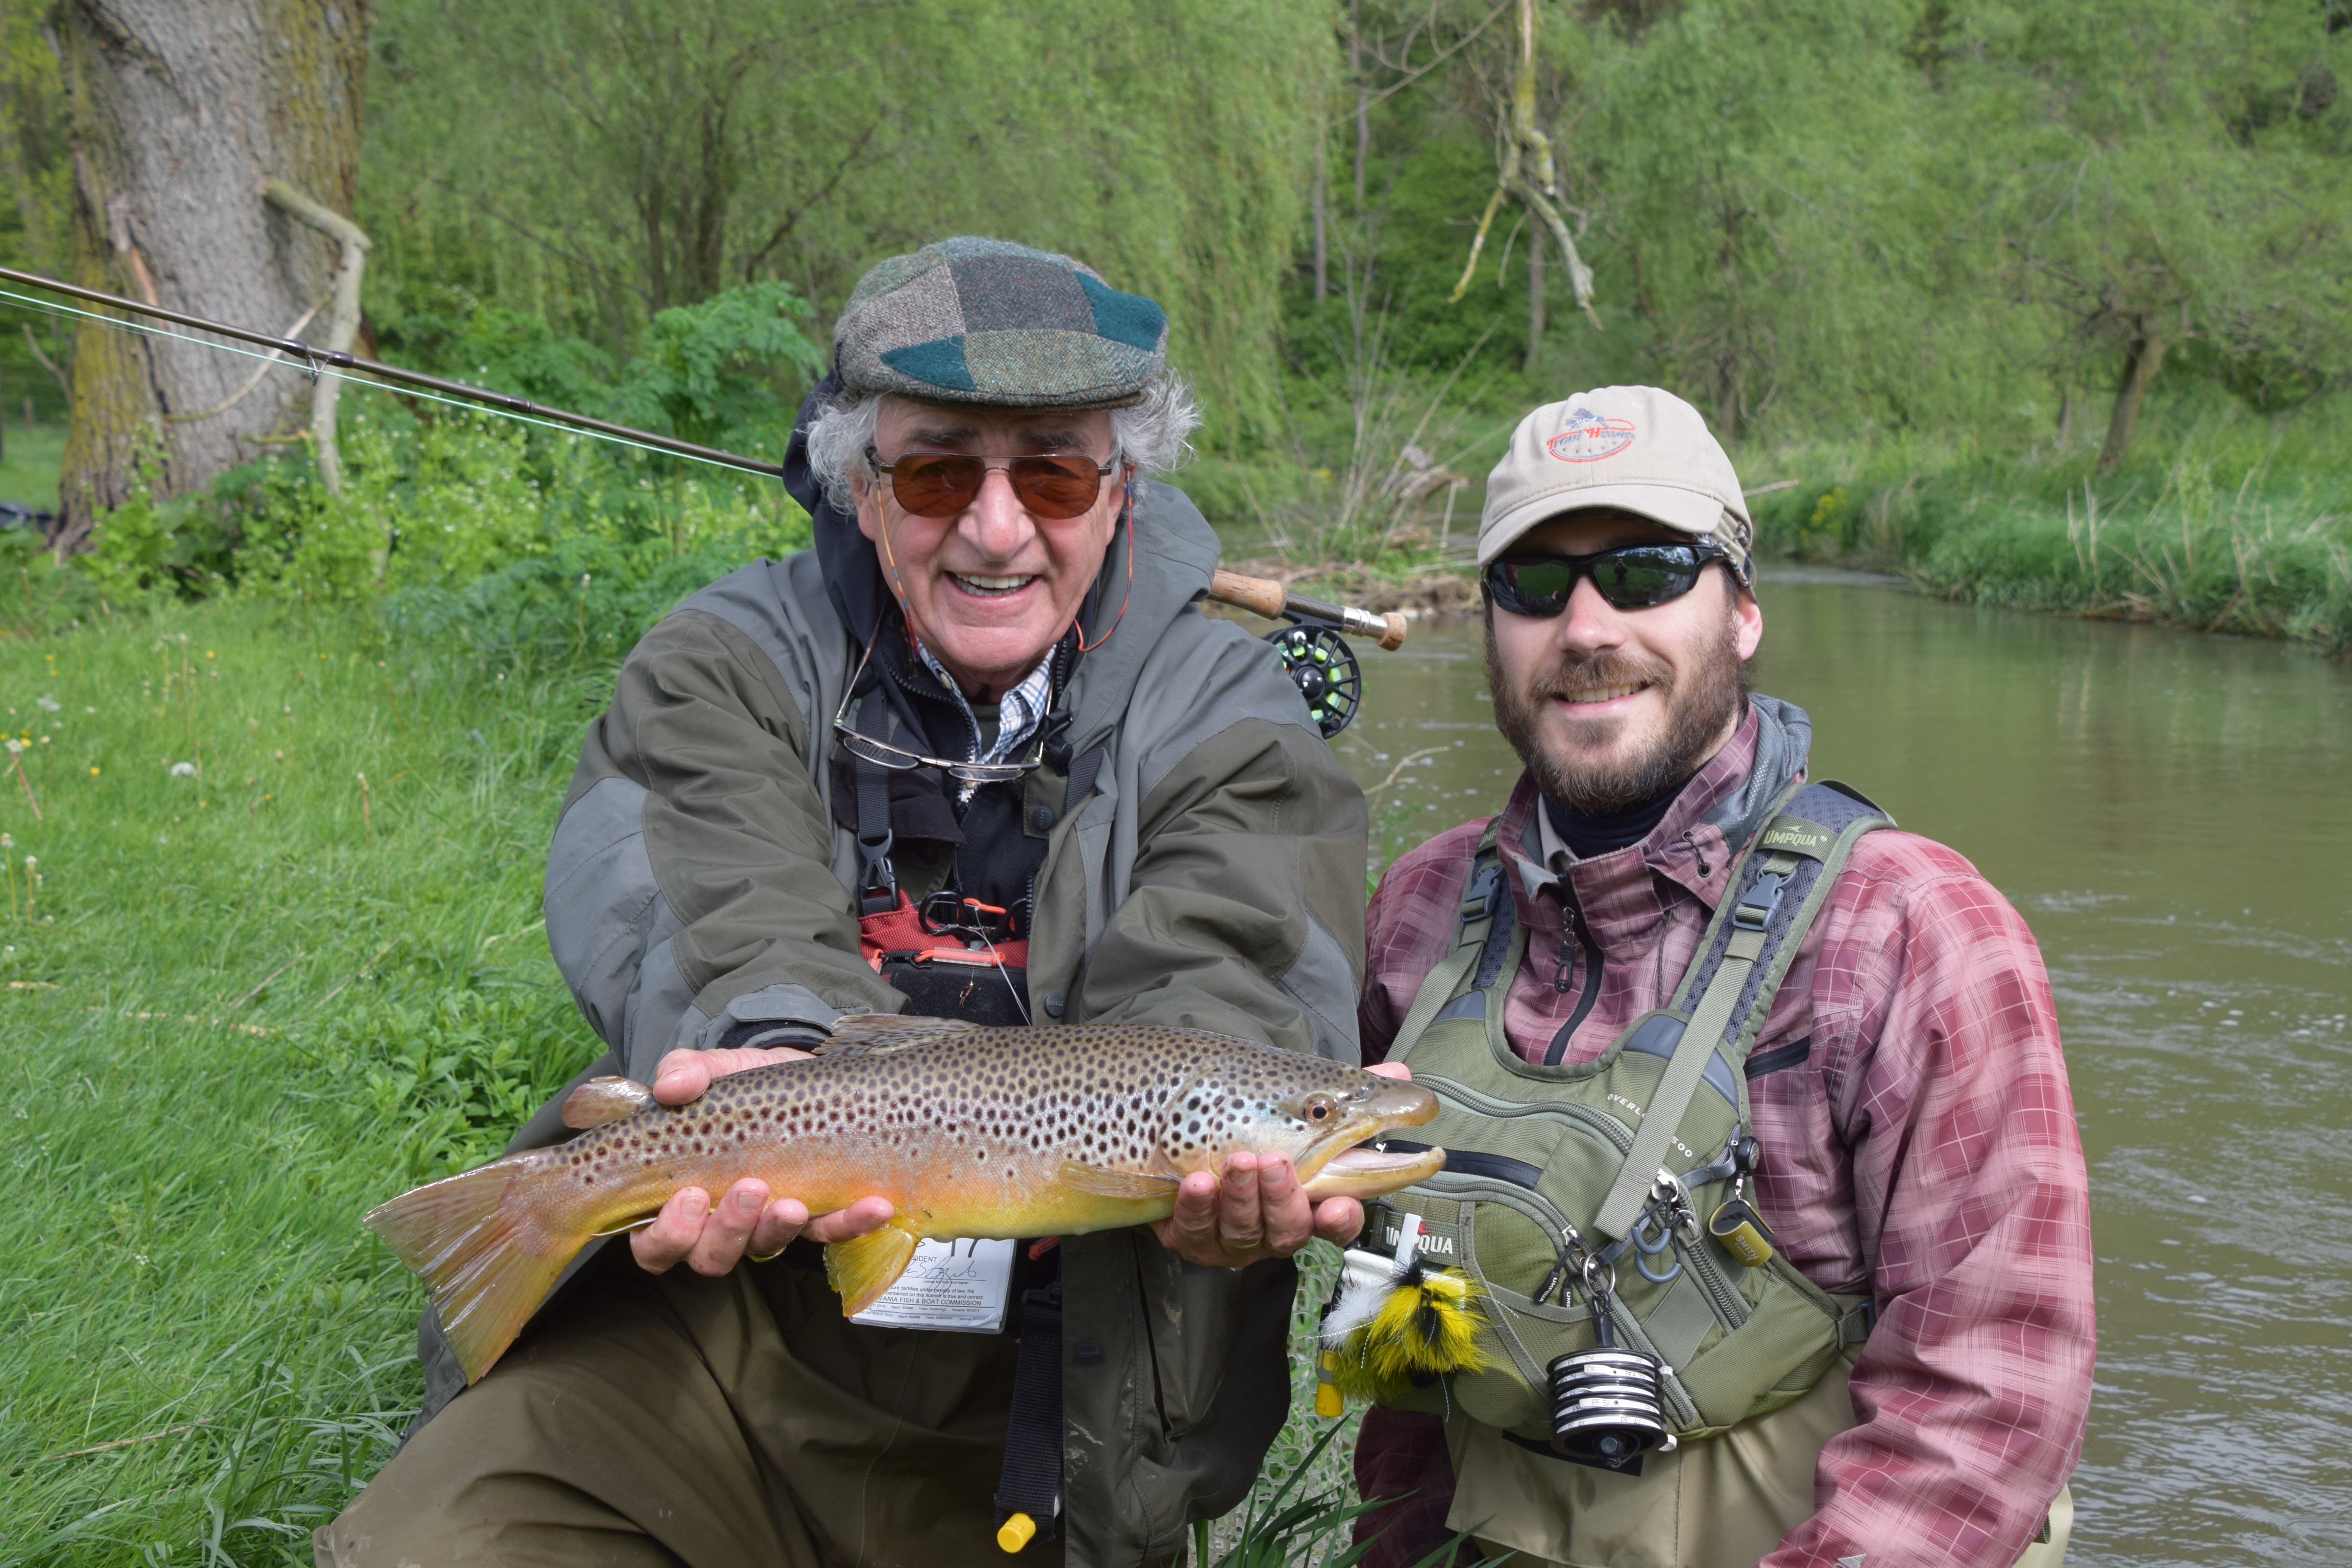 Spruce creek pa guided fly fishing trip for Fly fishing pennsylvania